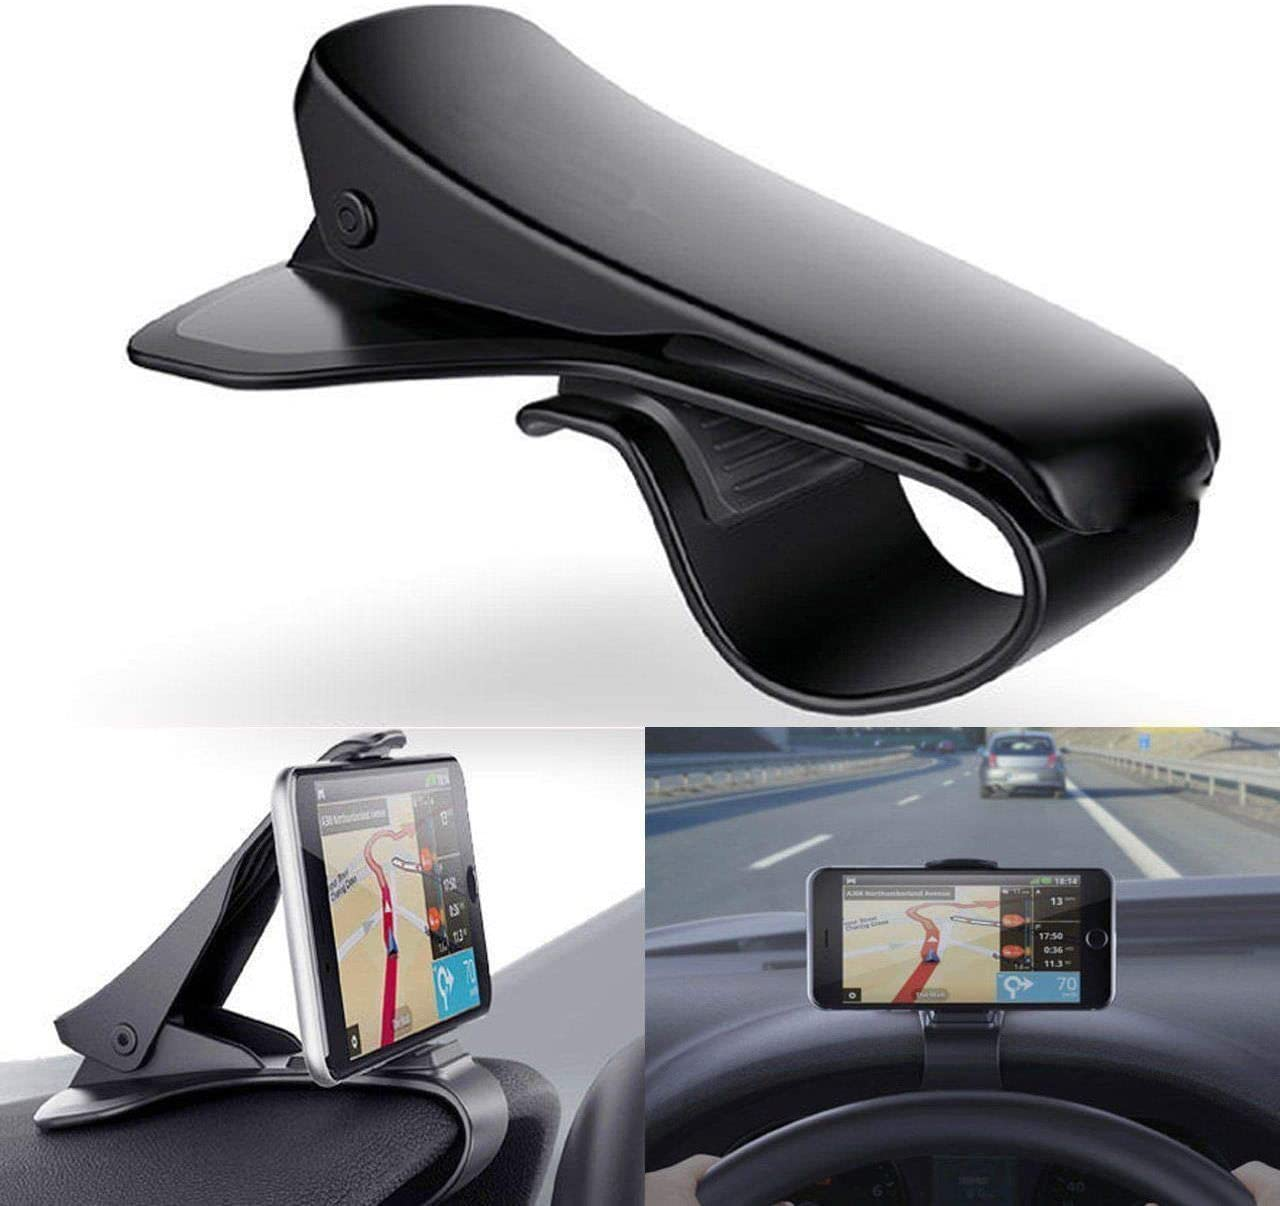 DishyKooker Universal Clip On Car HUD GPS Dashboard Mount Cell Phone Holder Non-Slip Stand